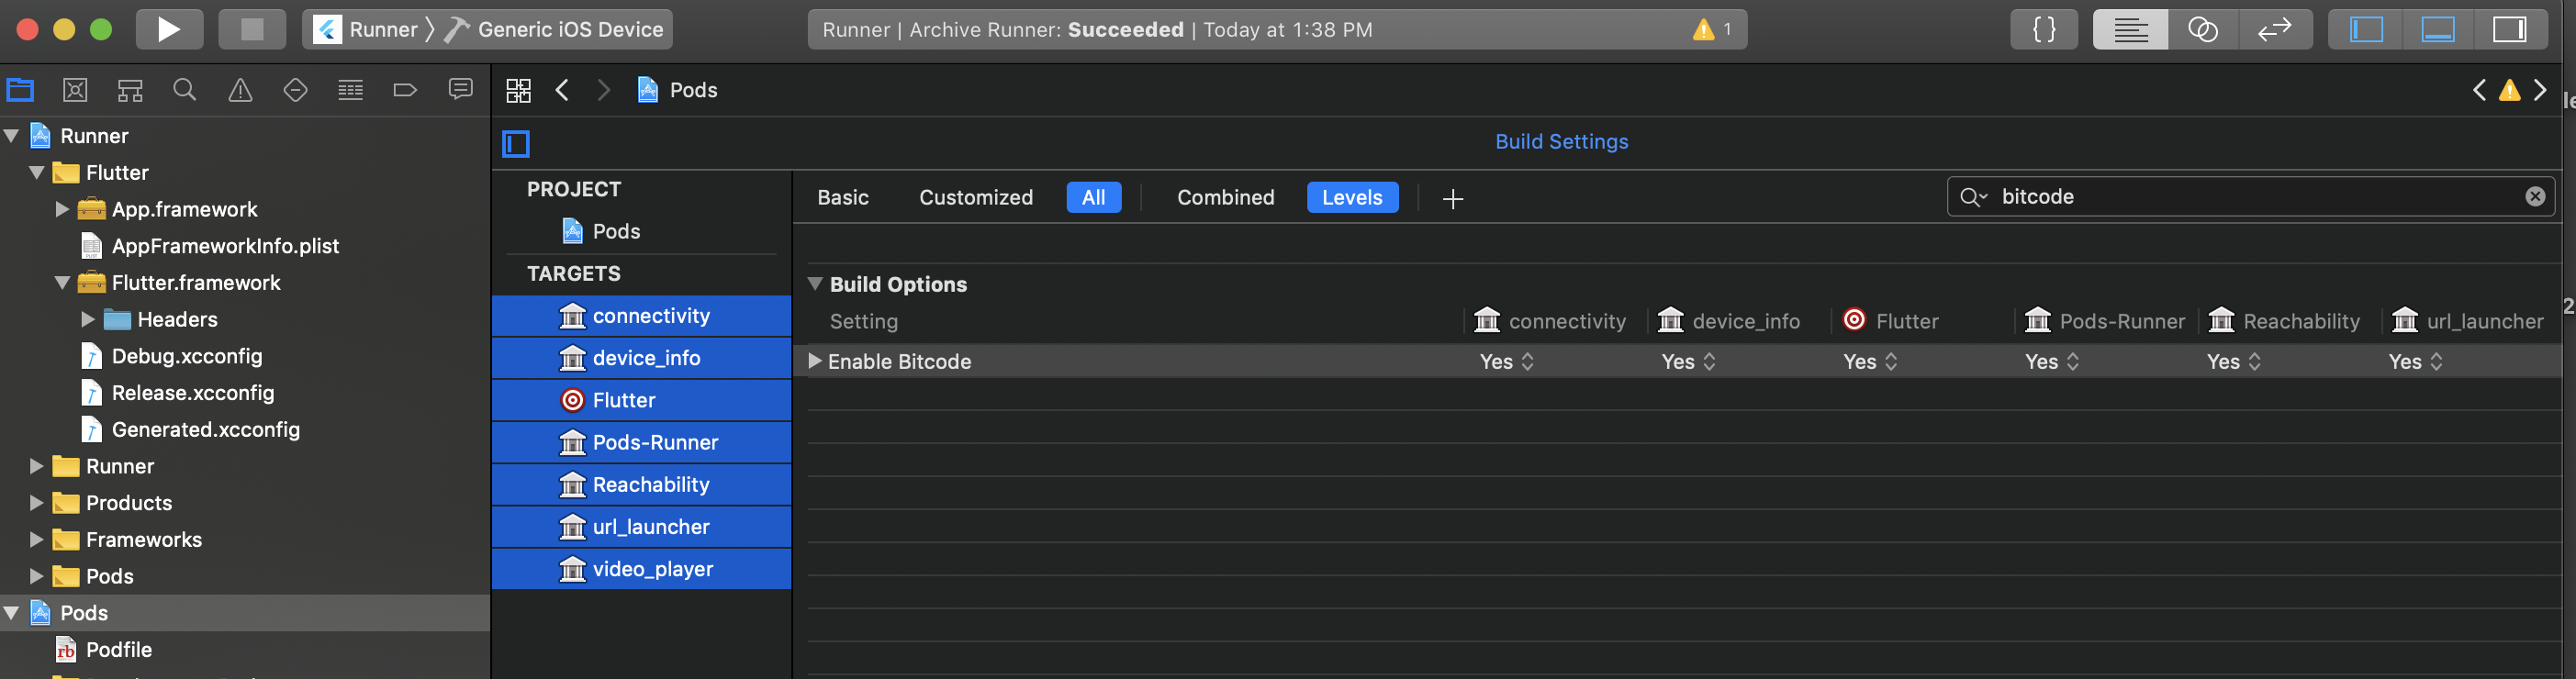 Xcode settings with plugins